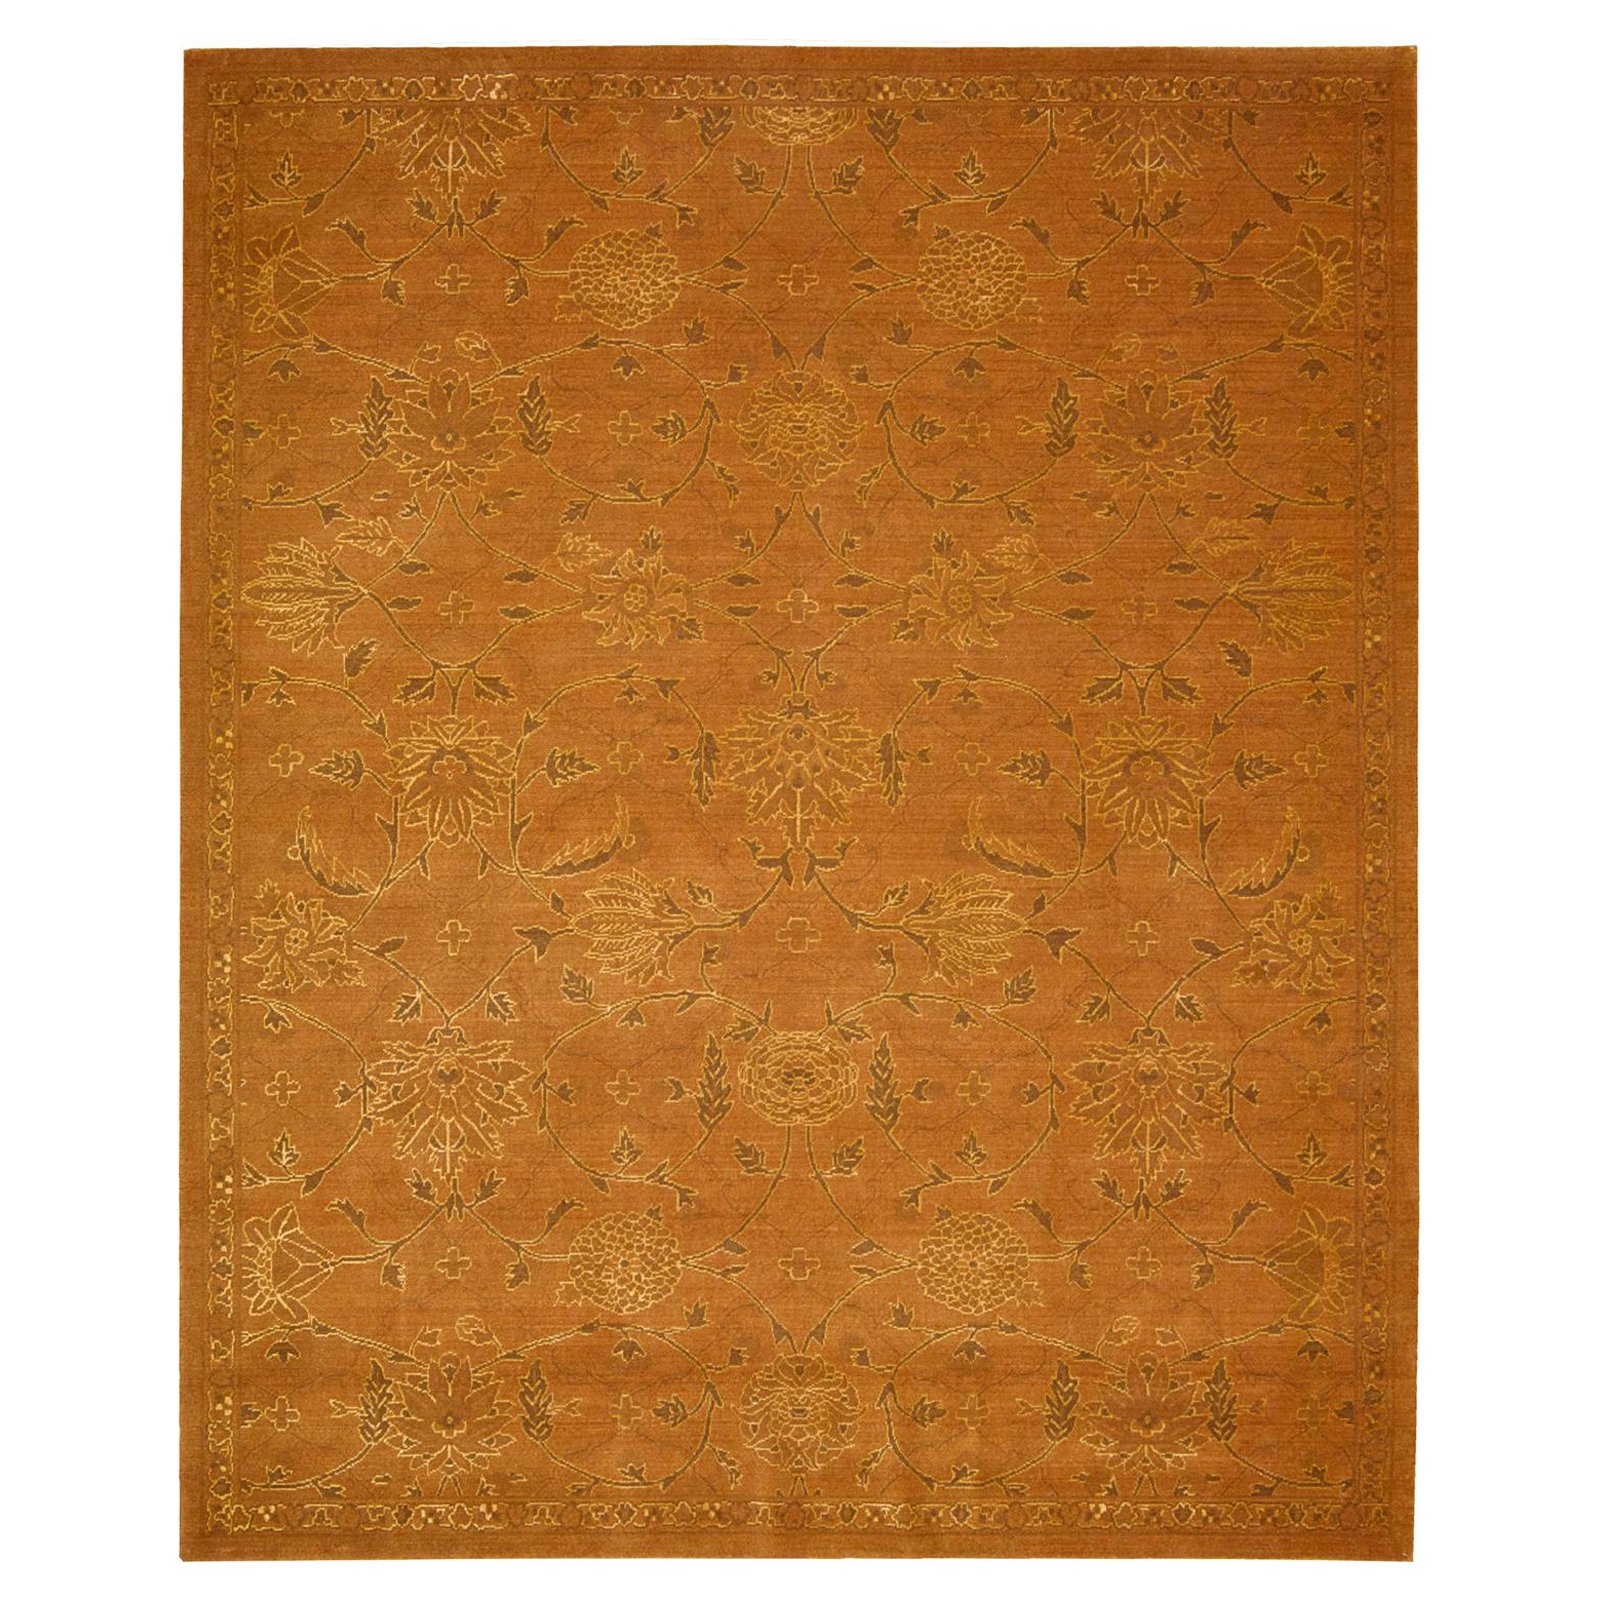 Nourison Silk Infusion SIF01 Indoor Area Rug - Copper - 7.75L x 9.75W ft.